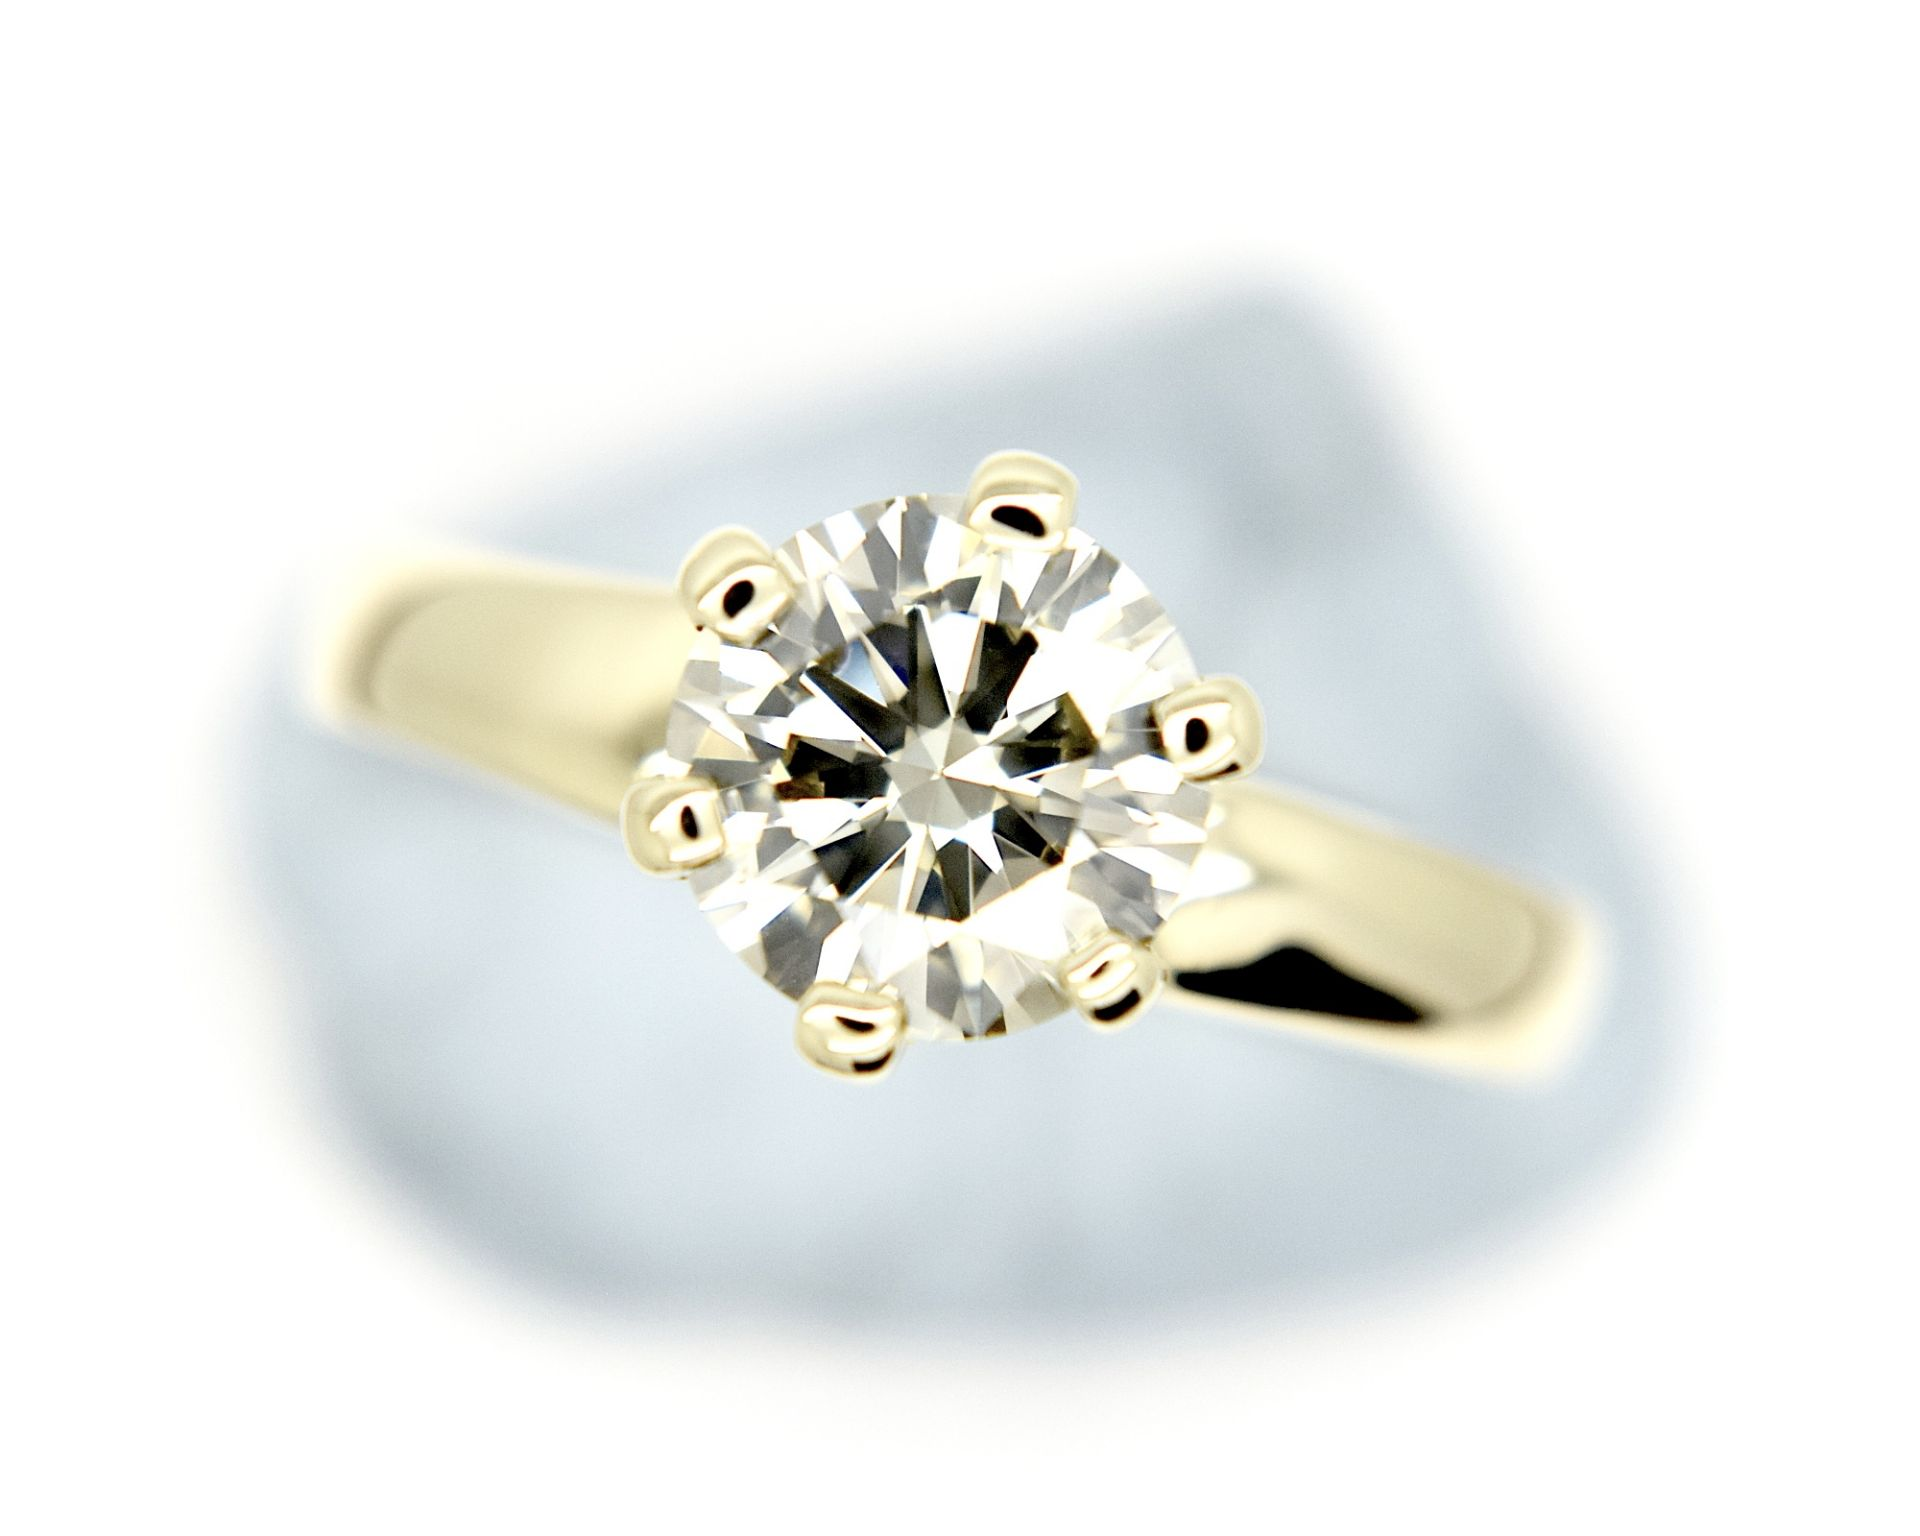 1.54CT DIAMOND SOLITAIRE RING Y. GOLD (ROUND BRILLIANT) - 2012 VALUATION £6,200 INCLUDED